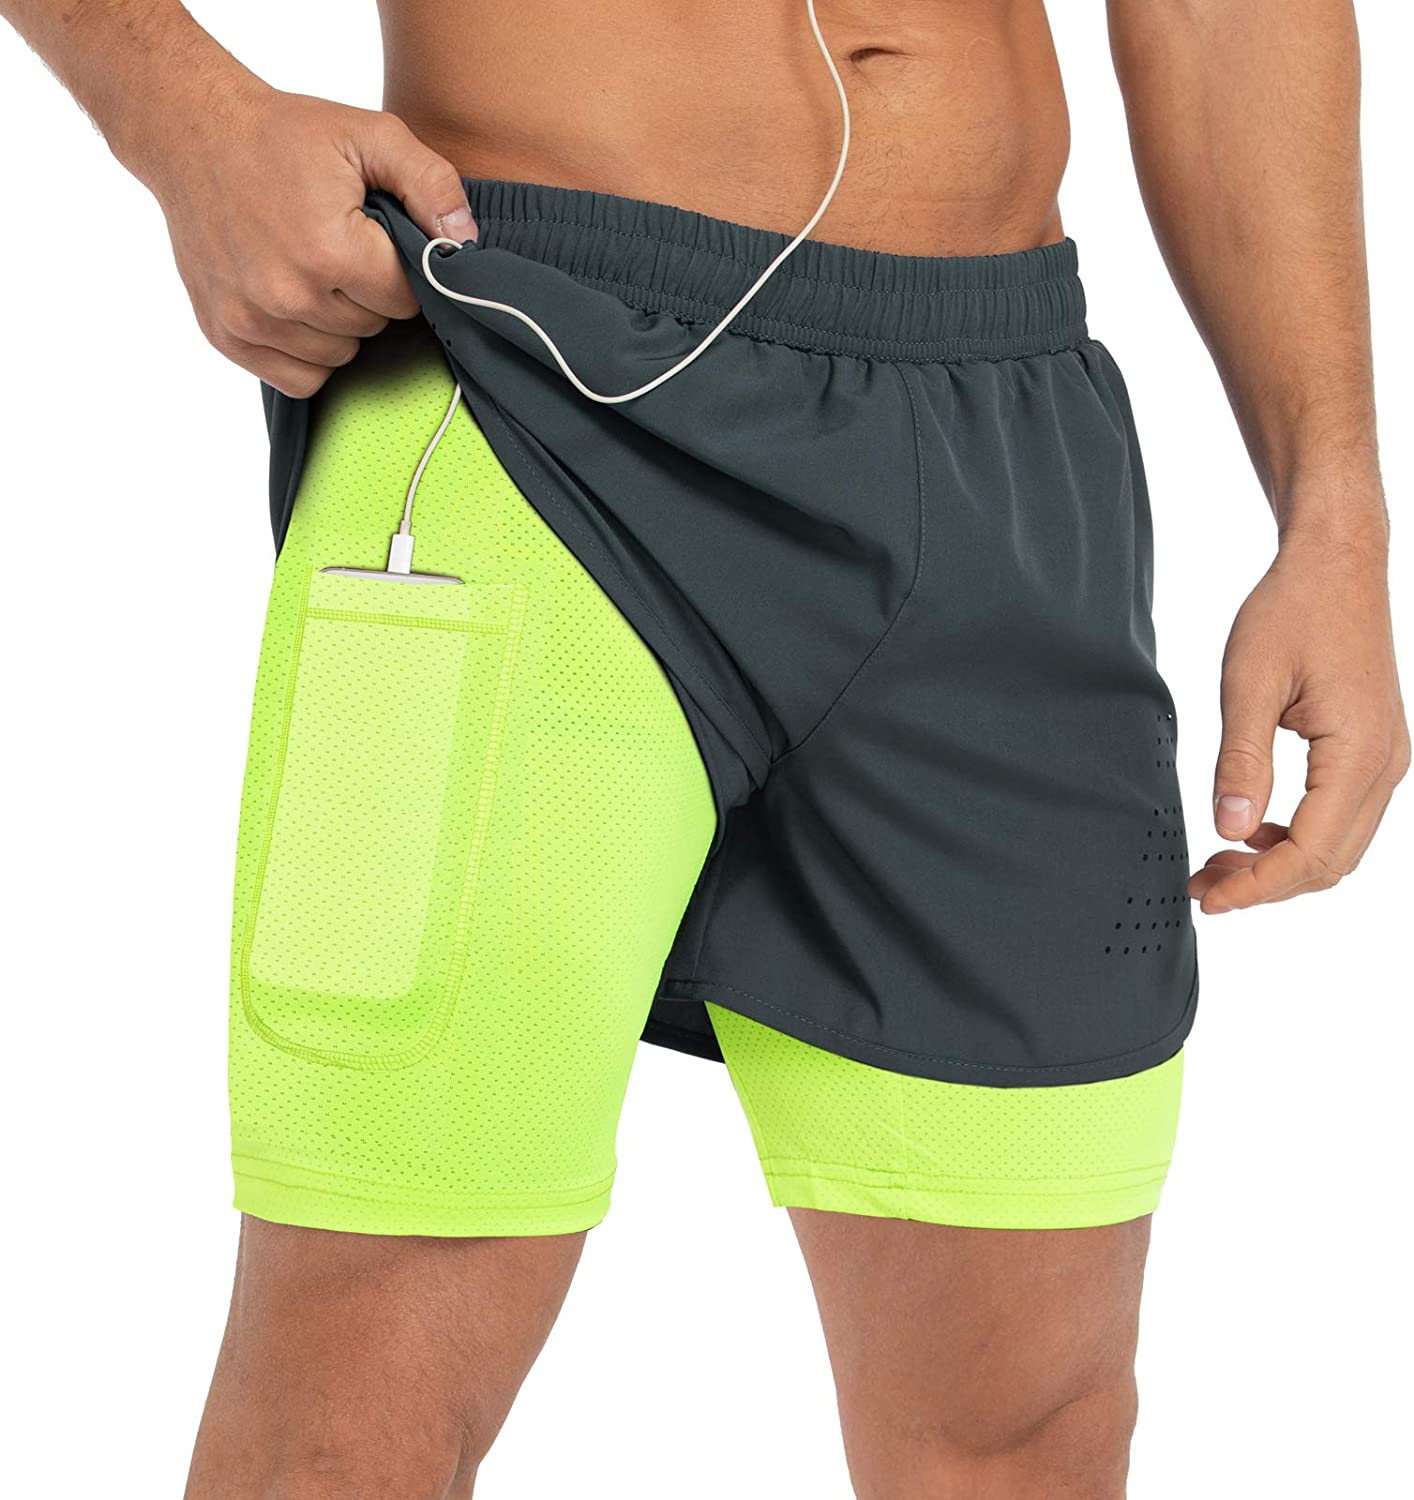 Gesean Men's Max 61% OFF 2 Special price in 1 Workout 5